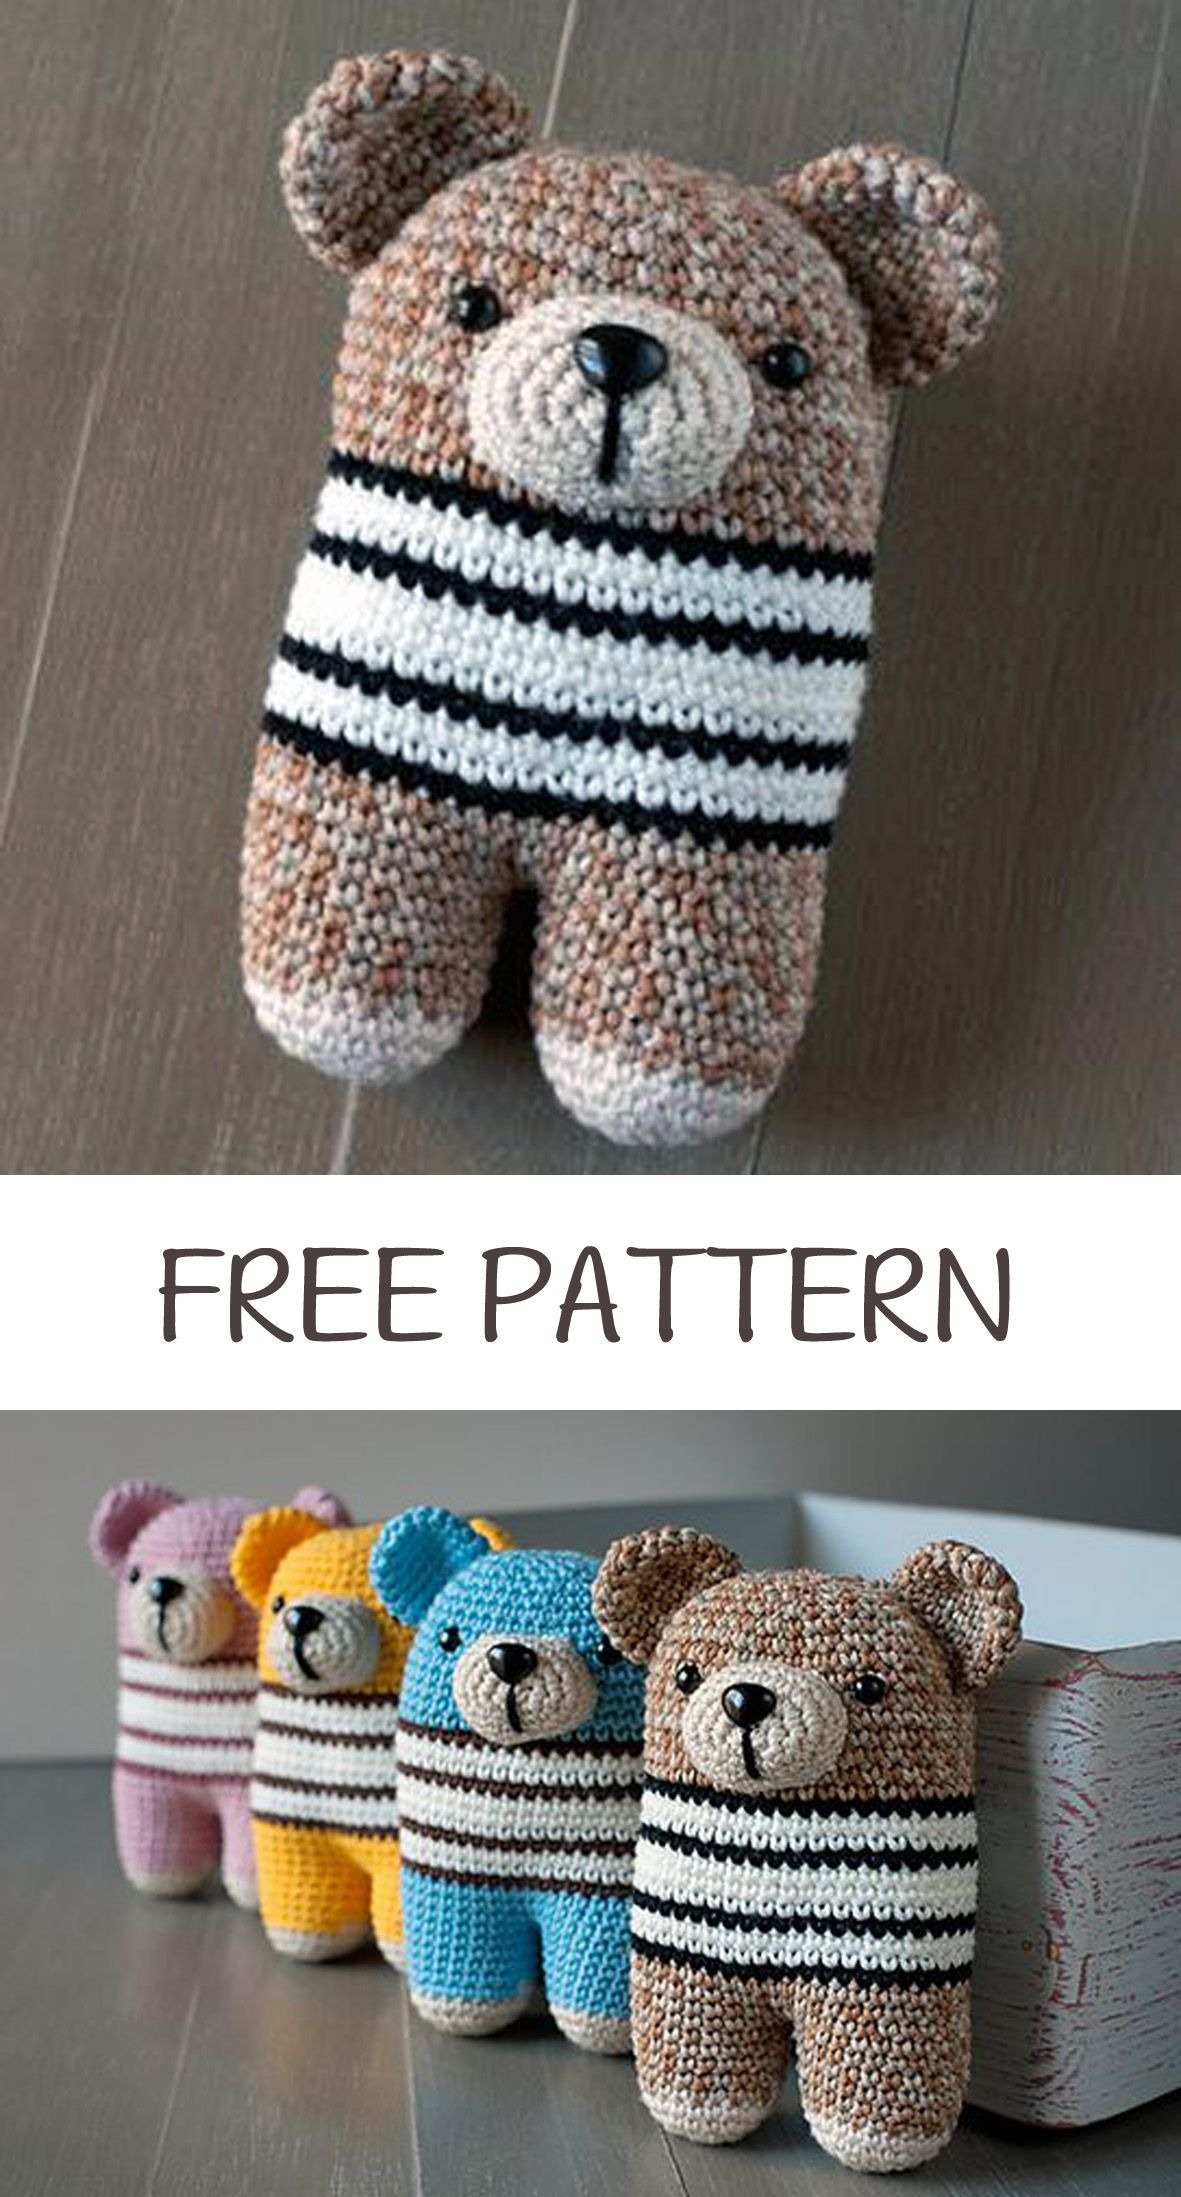 Crochet Bear #crochetbearpatterns